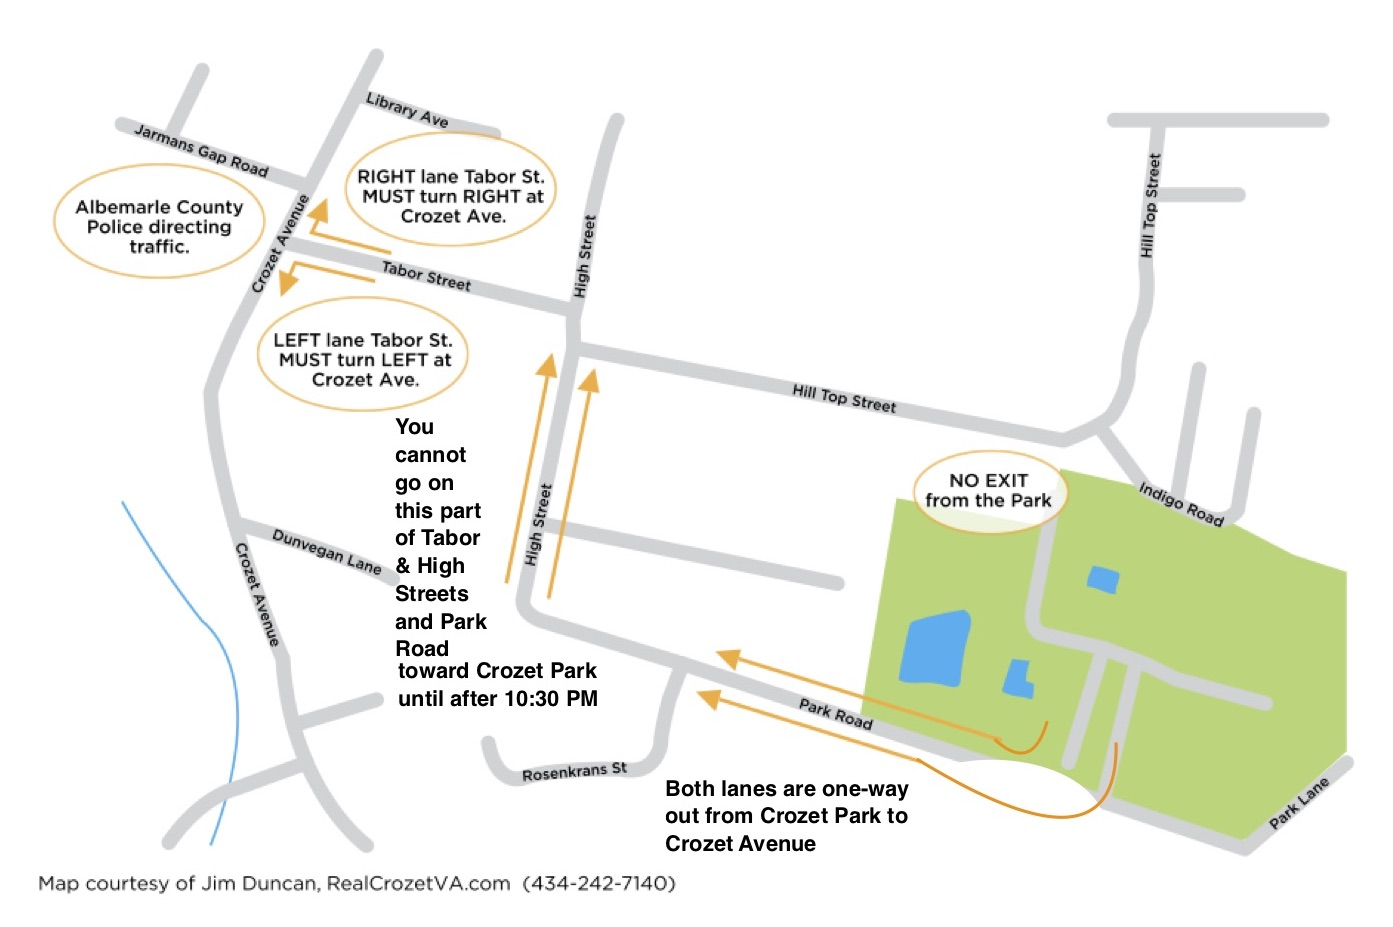 Map of the one-way exit from Crozet Park after the Independence Day Fireworks